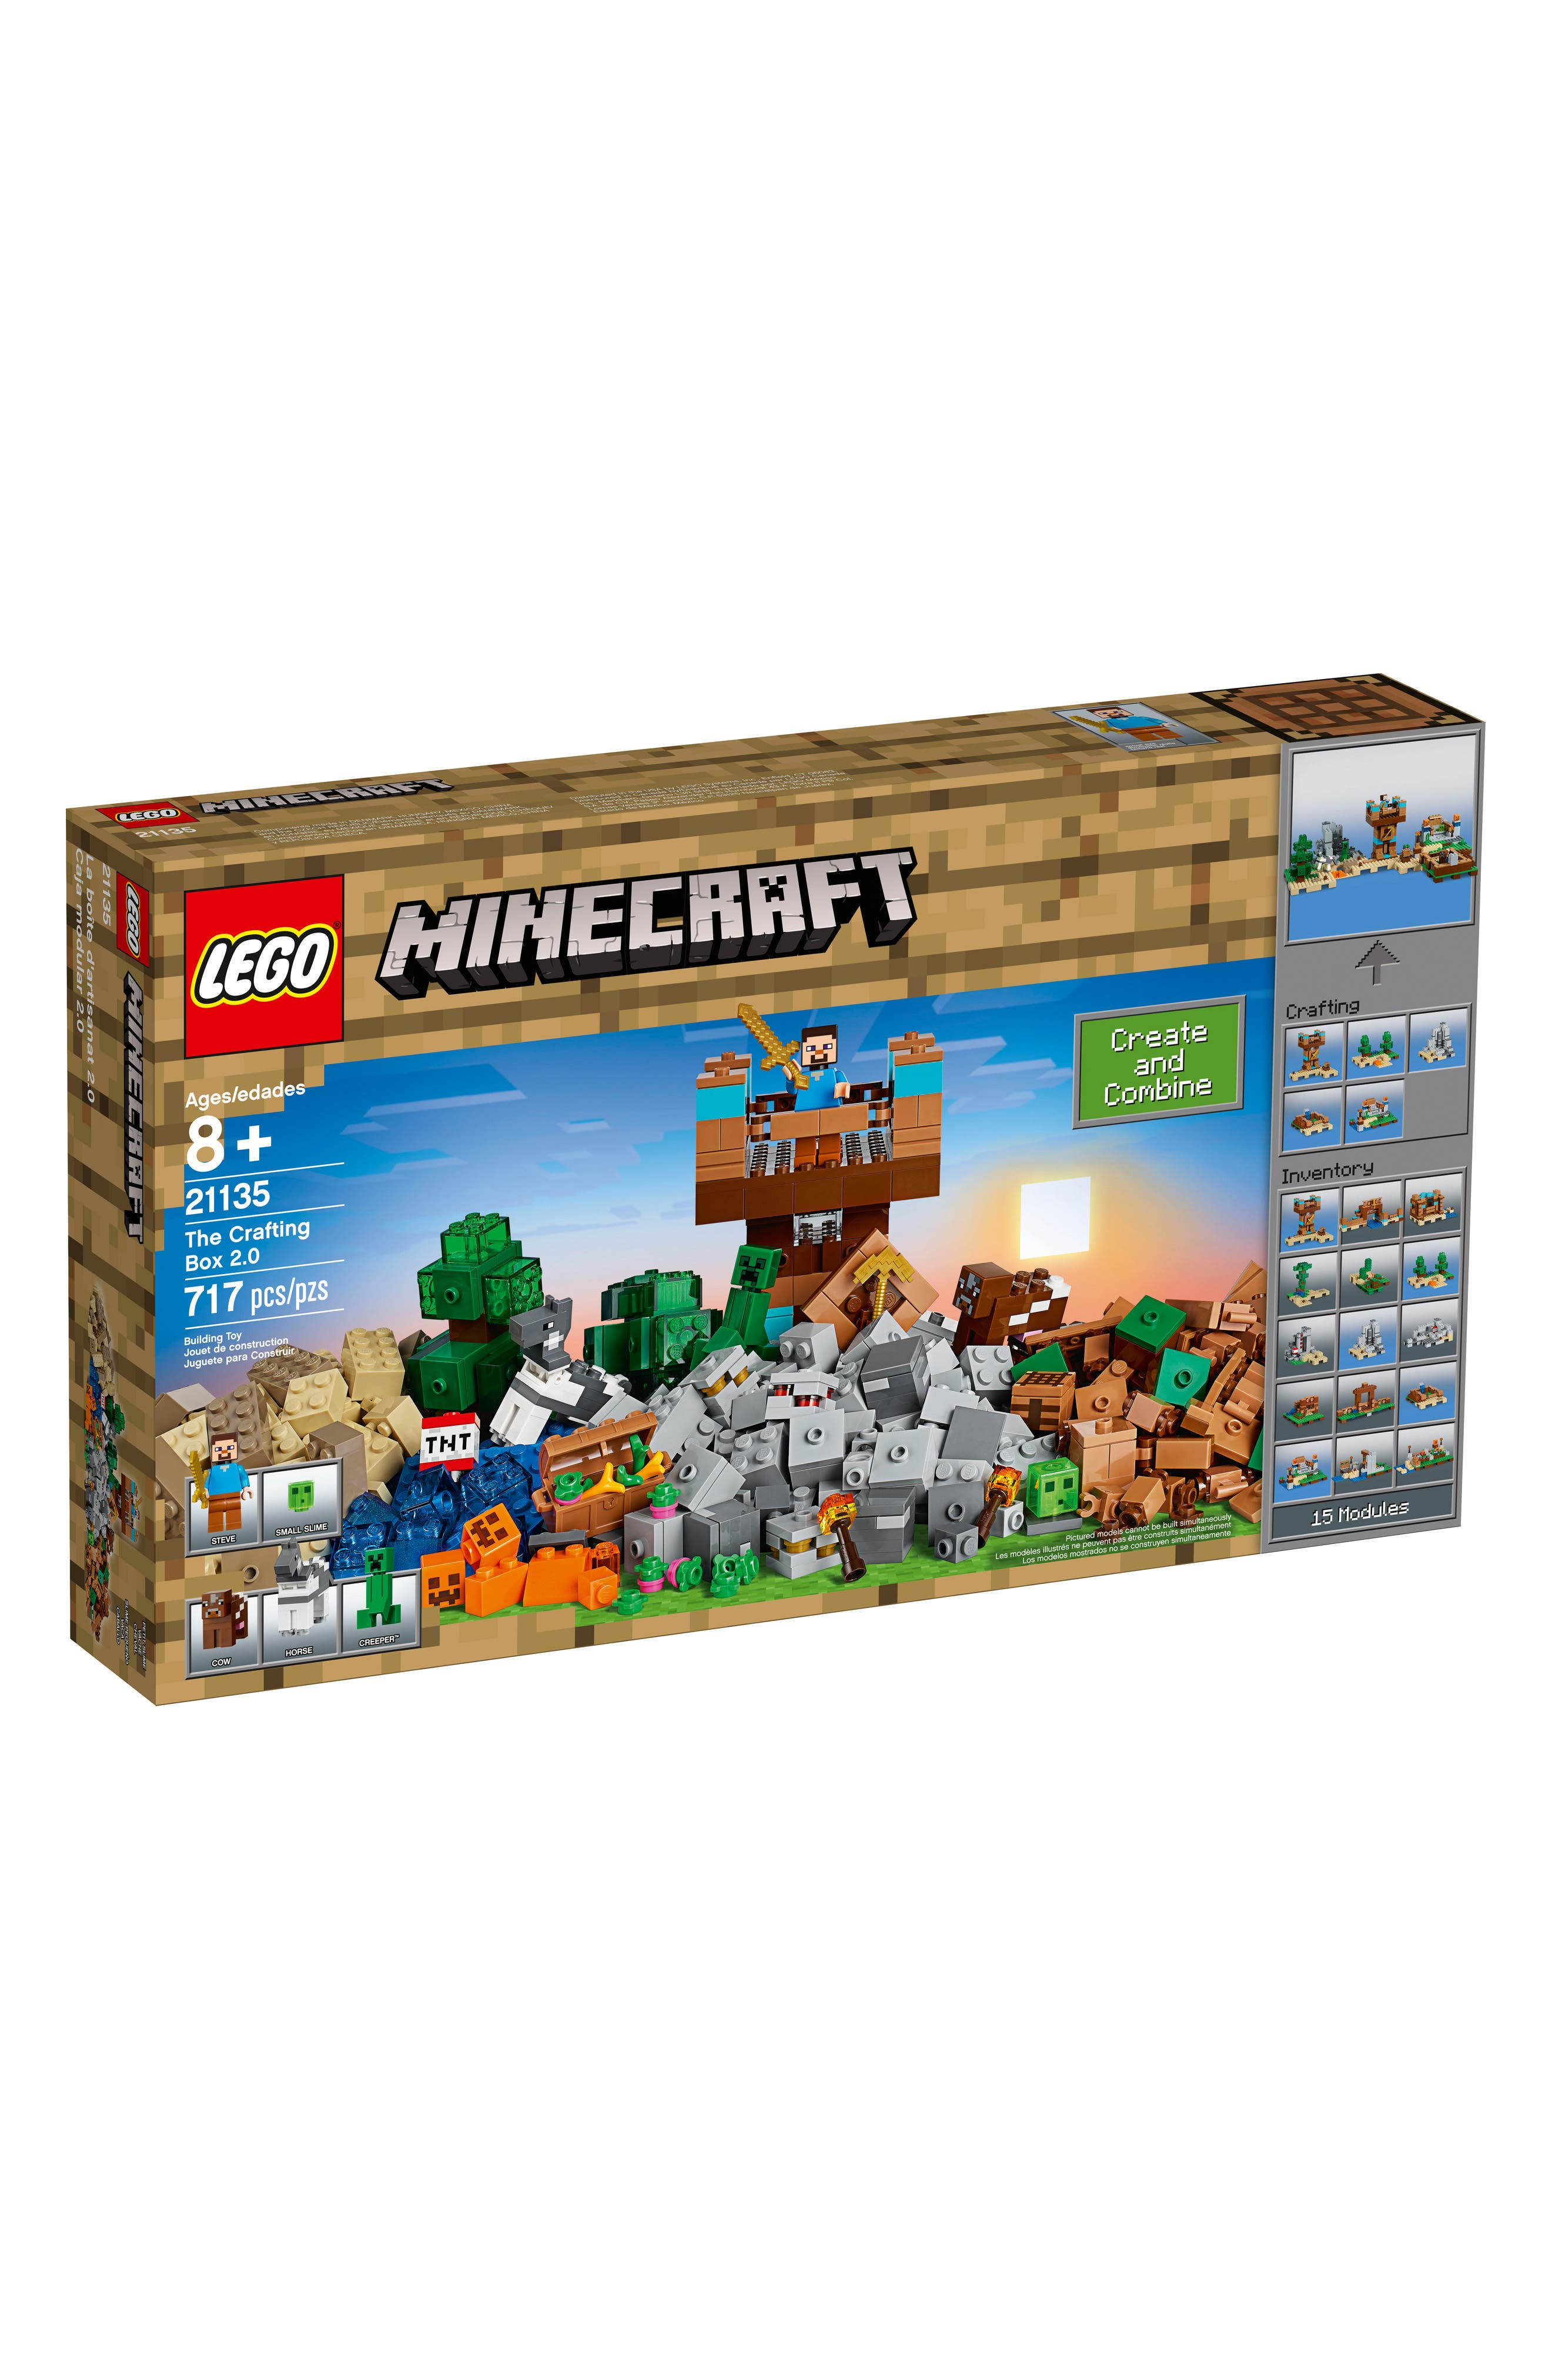 Main Image - LEGO® Minecraft™ The Crafting Box 2.0 Play Set - 21135